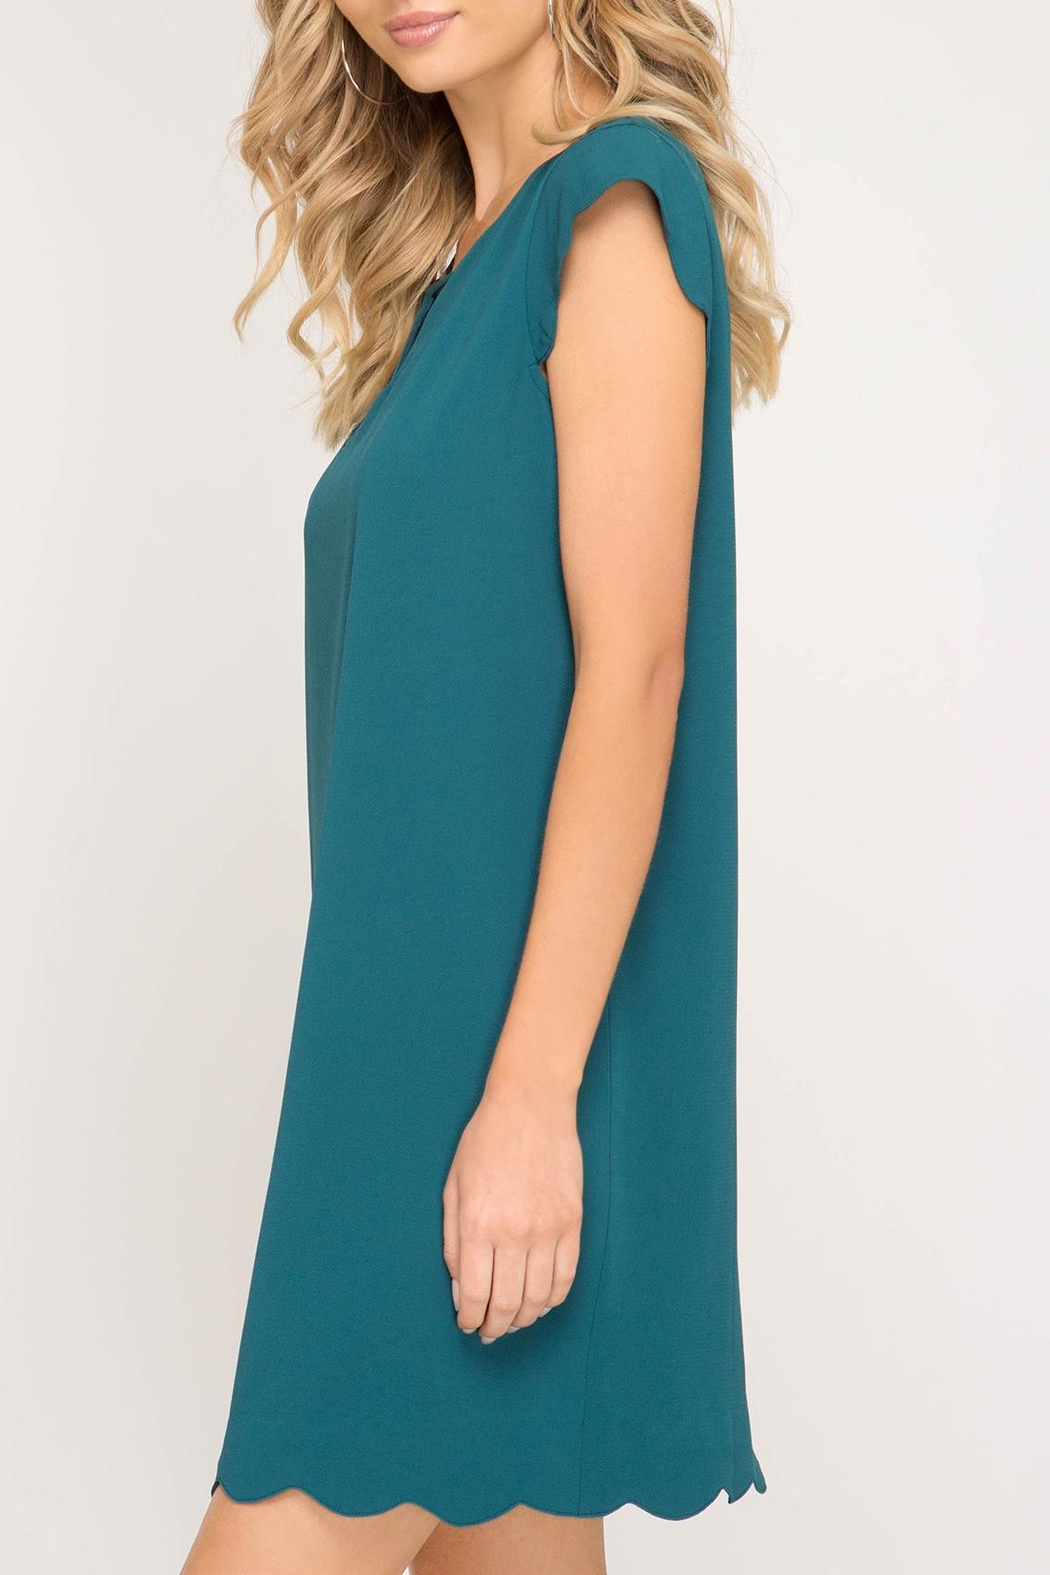 She + Sky Scalloped Hem Dress - Front Full Image